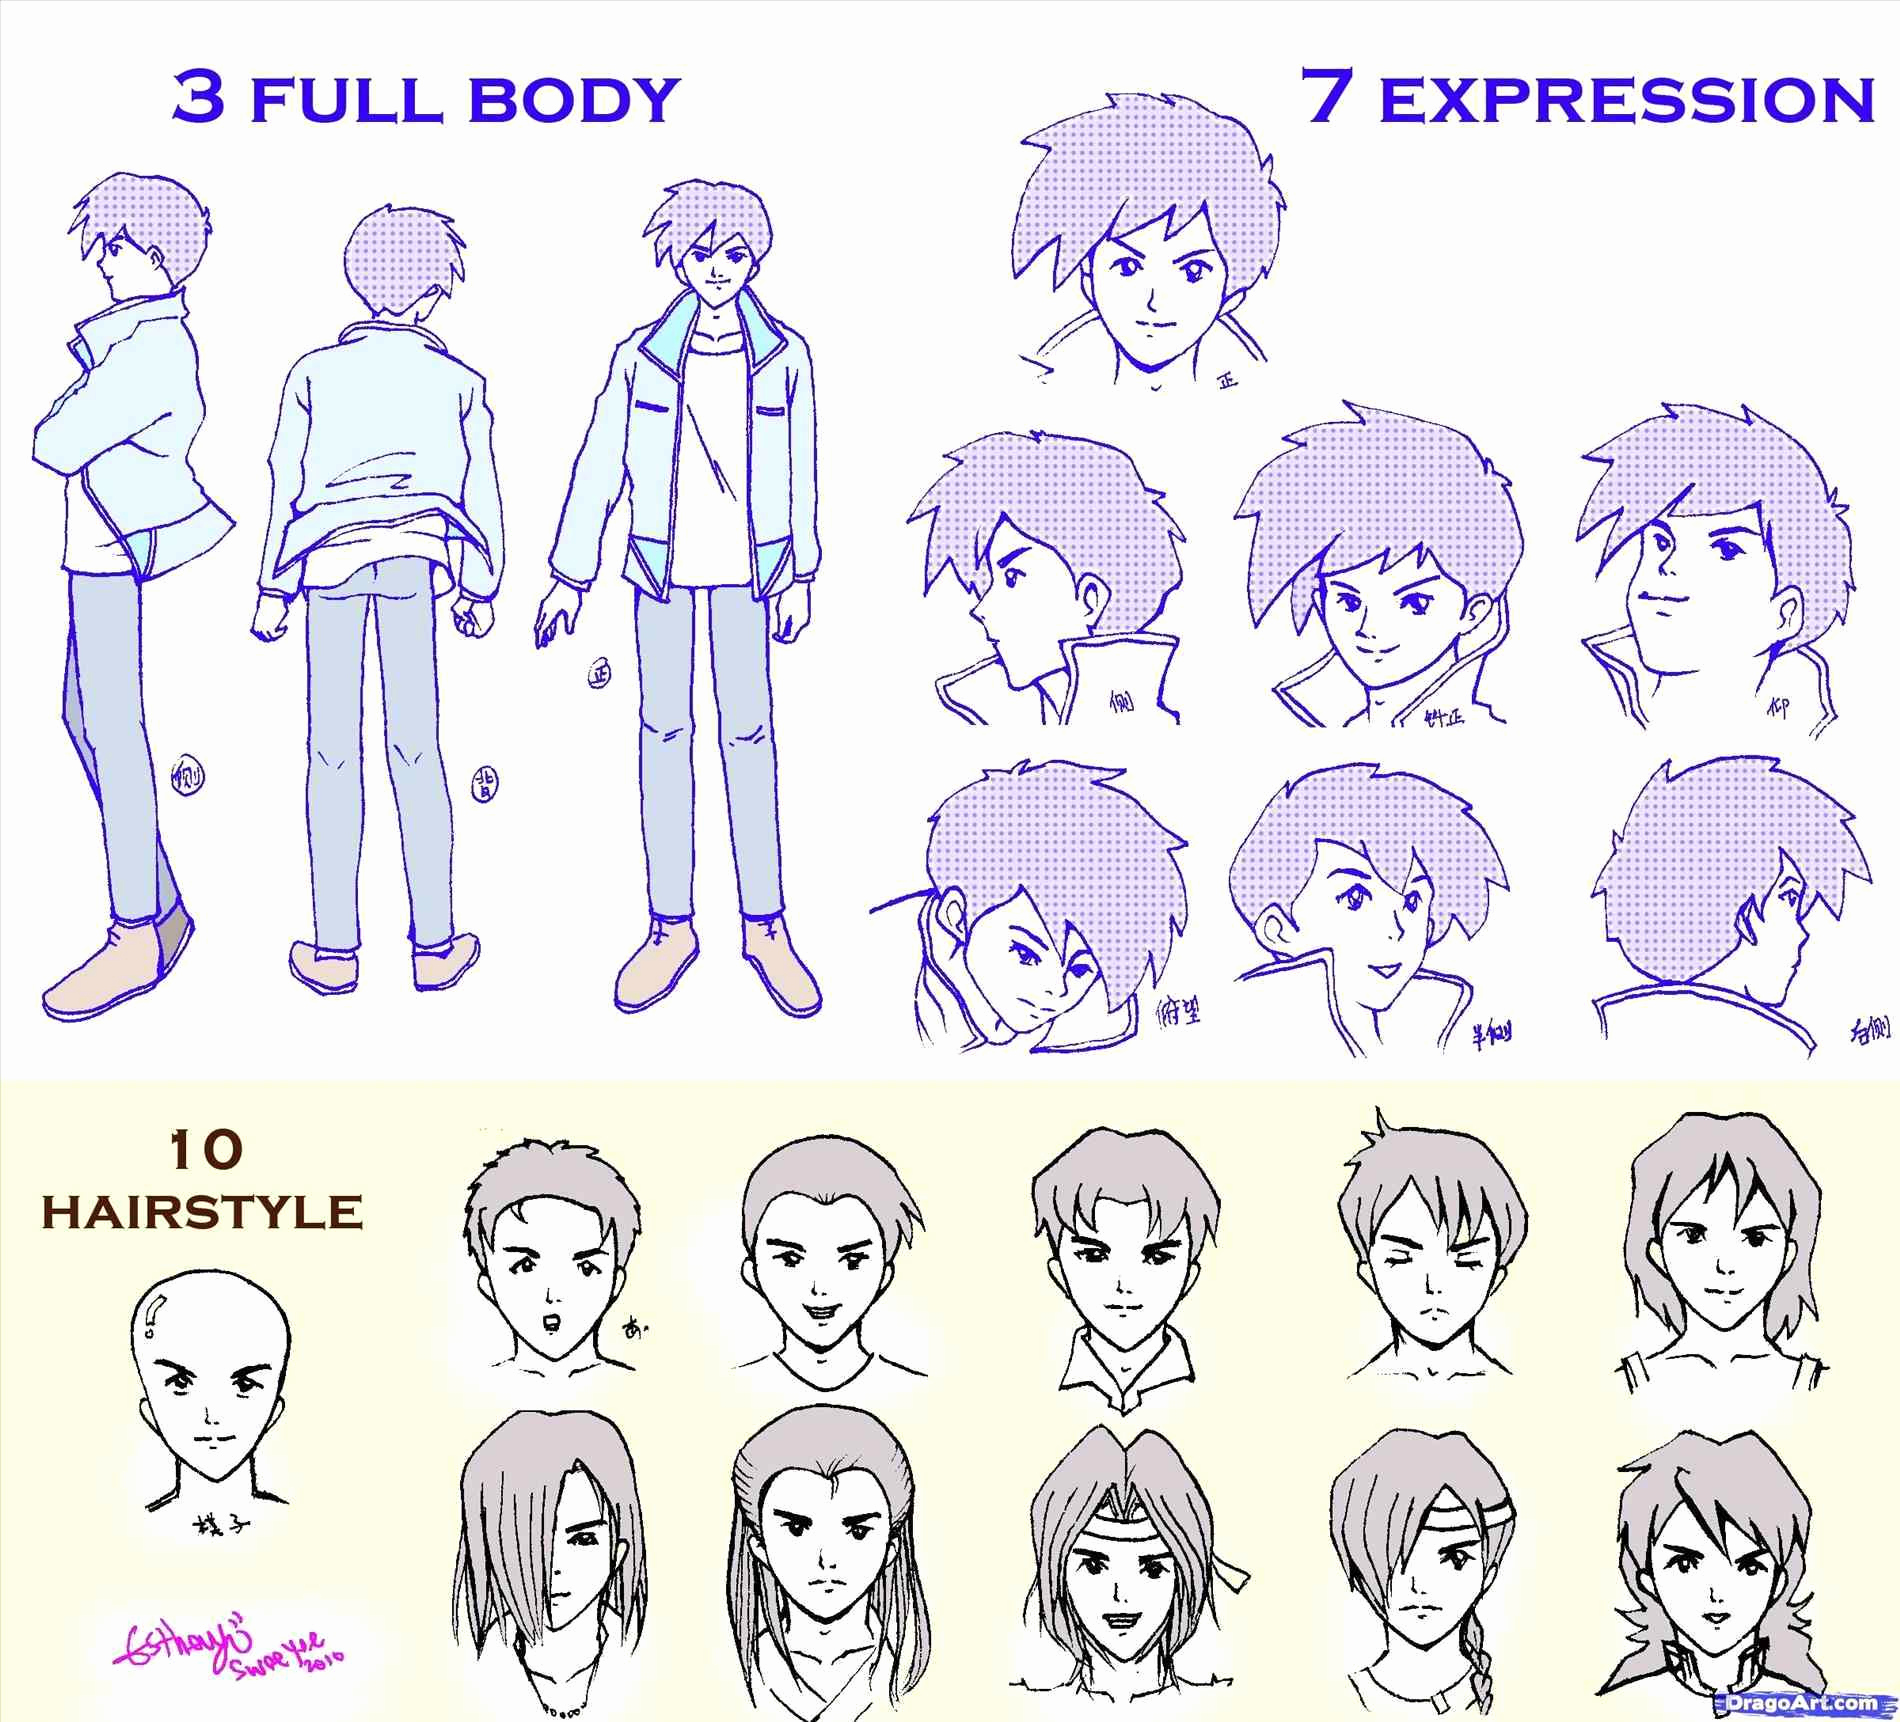 Anime Guy Hairstyles Drawing At Getdrawings Free For Personal